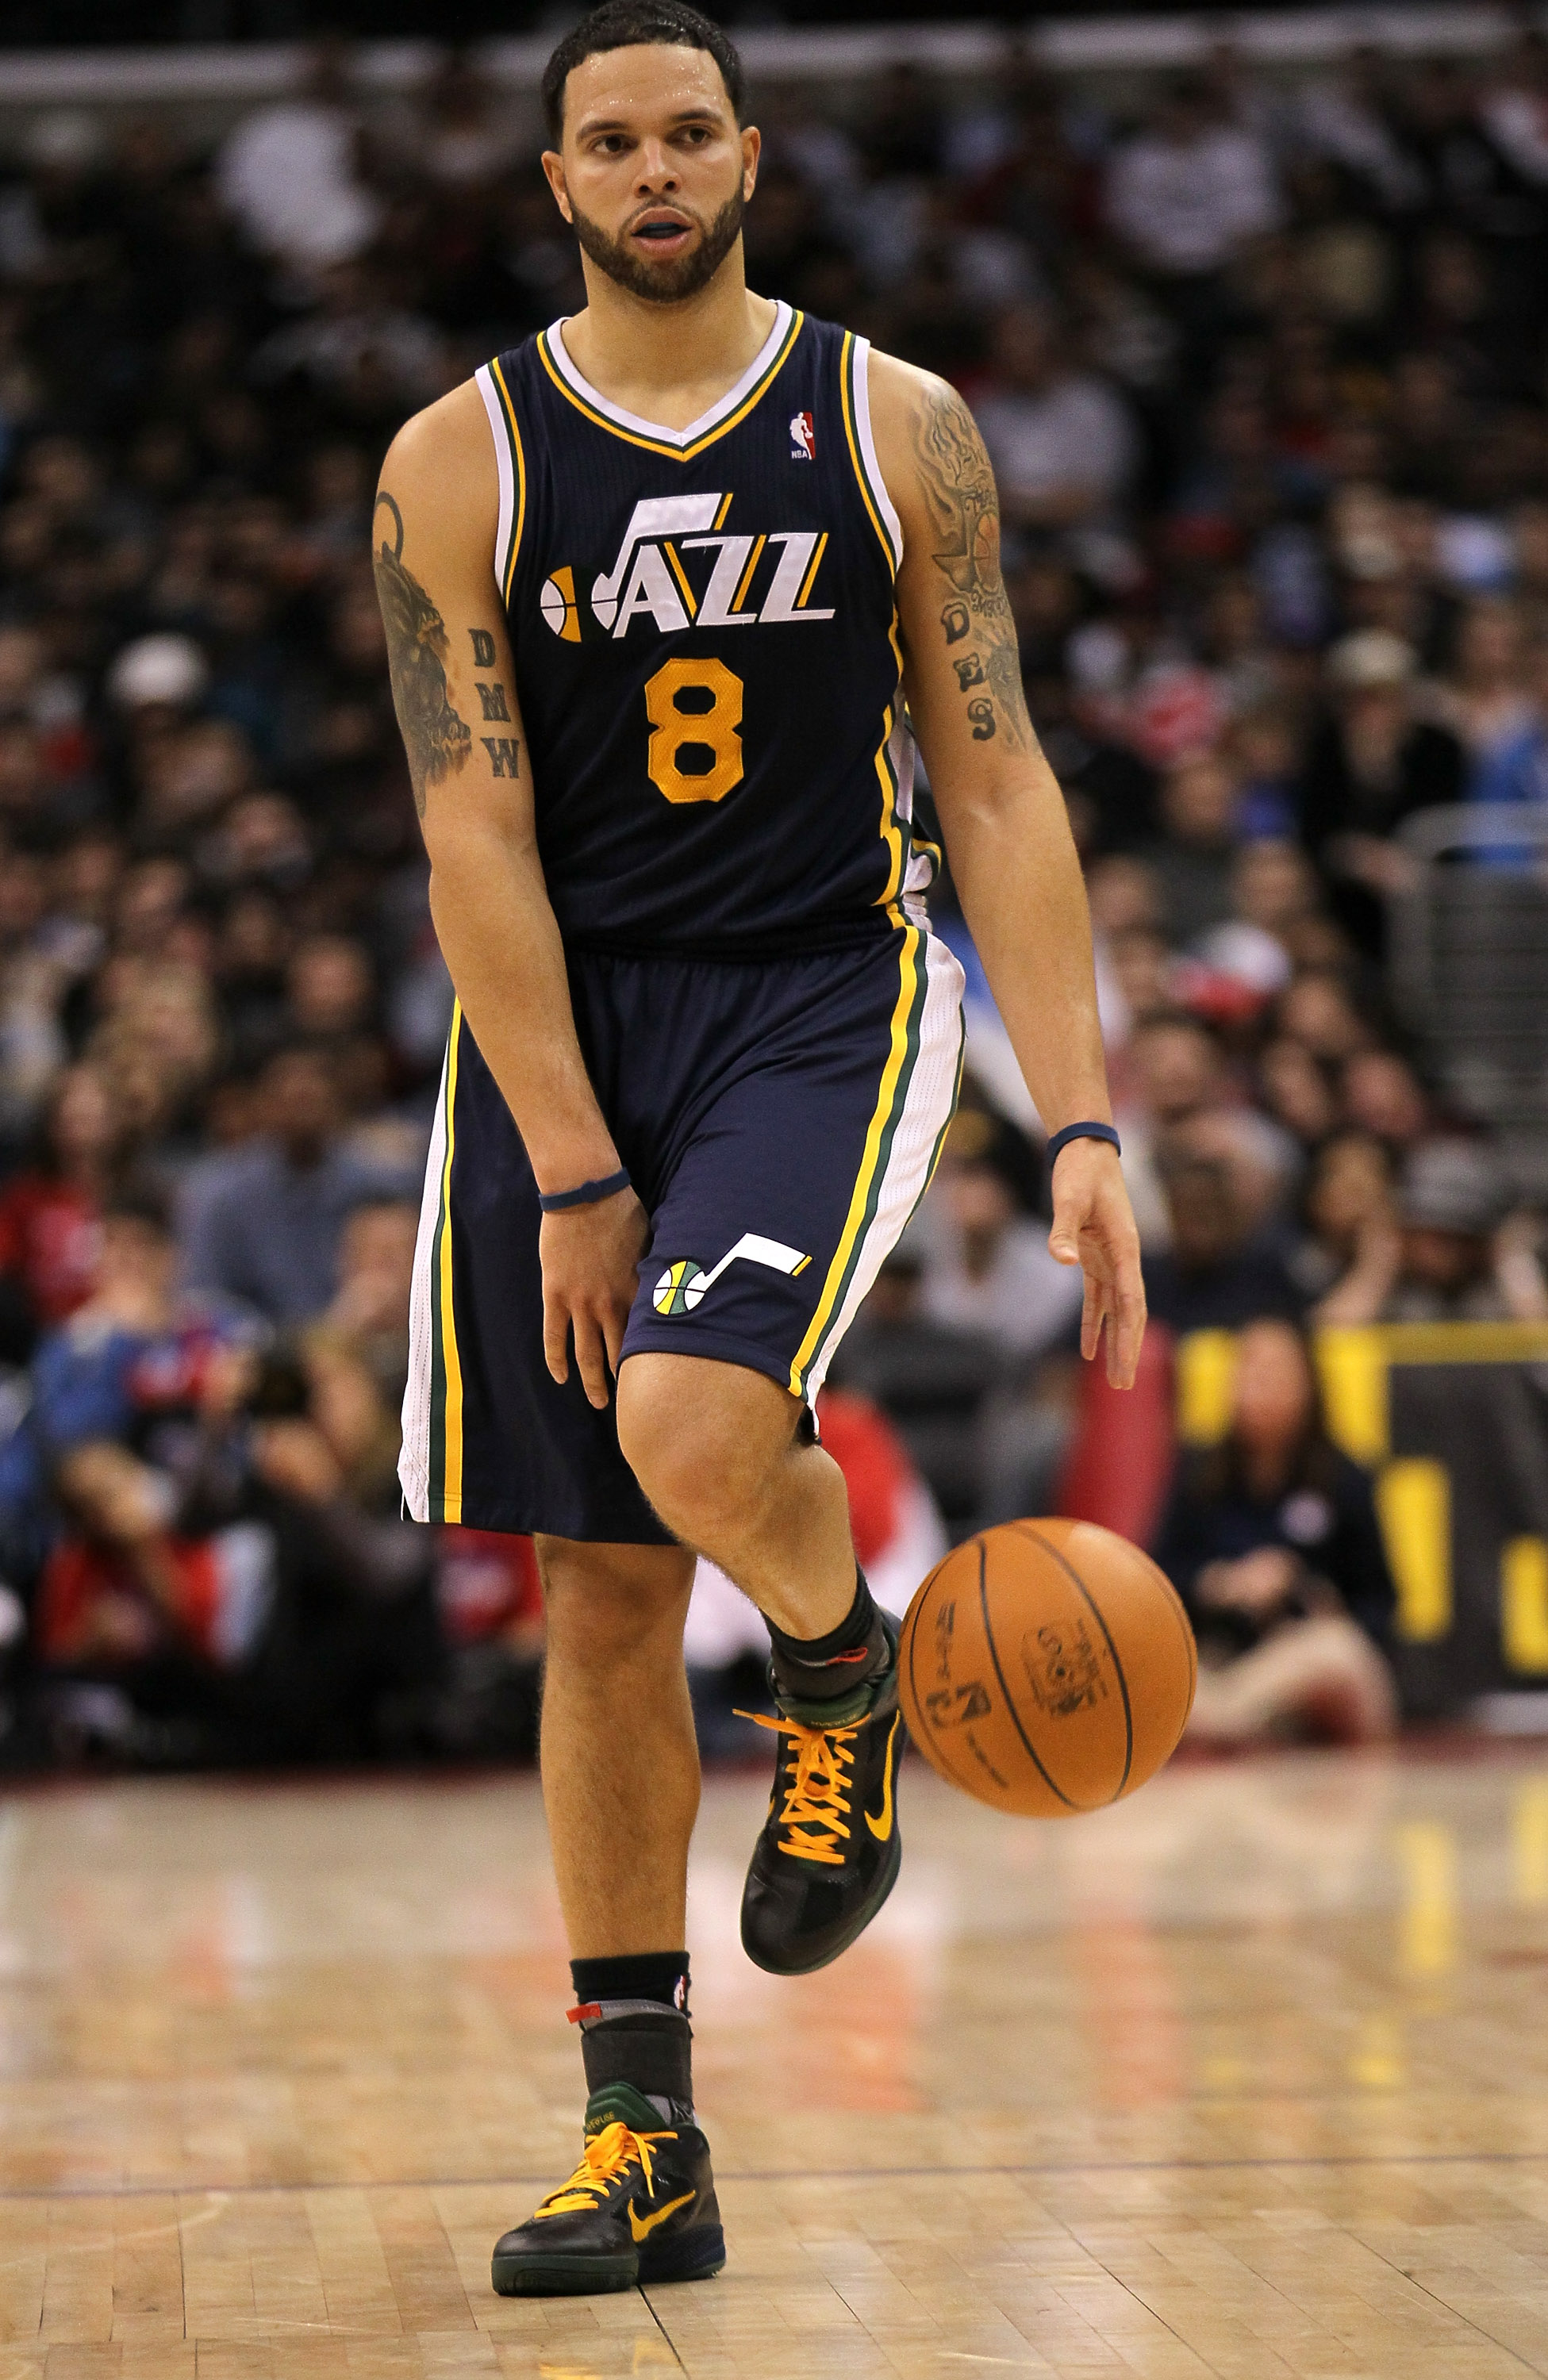 LOS ANGELES, CA - DECEMBER 29:  Deron Williams #8 of the Utah Jazz controls the ball against the Los Angeles Clippers at Staples Center on December 29, 2010 in Los Angeles, California.   The Jazz won 103-85.  NOTE TO USER: User expressly acknowledges and